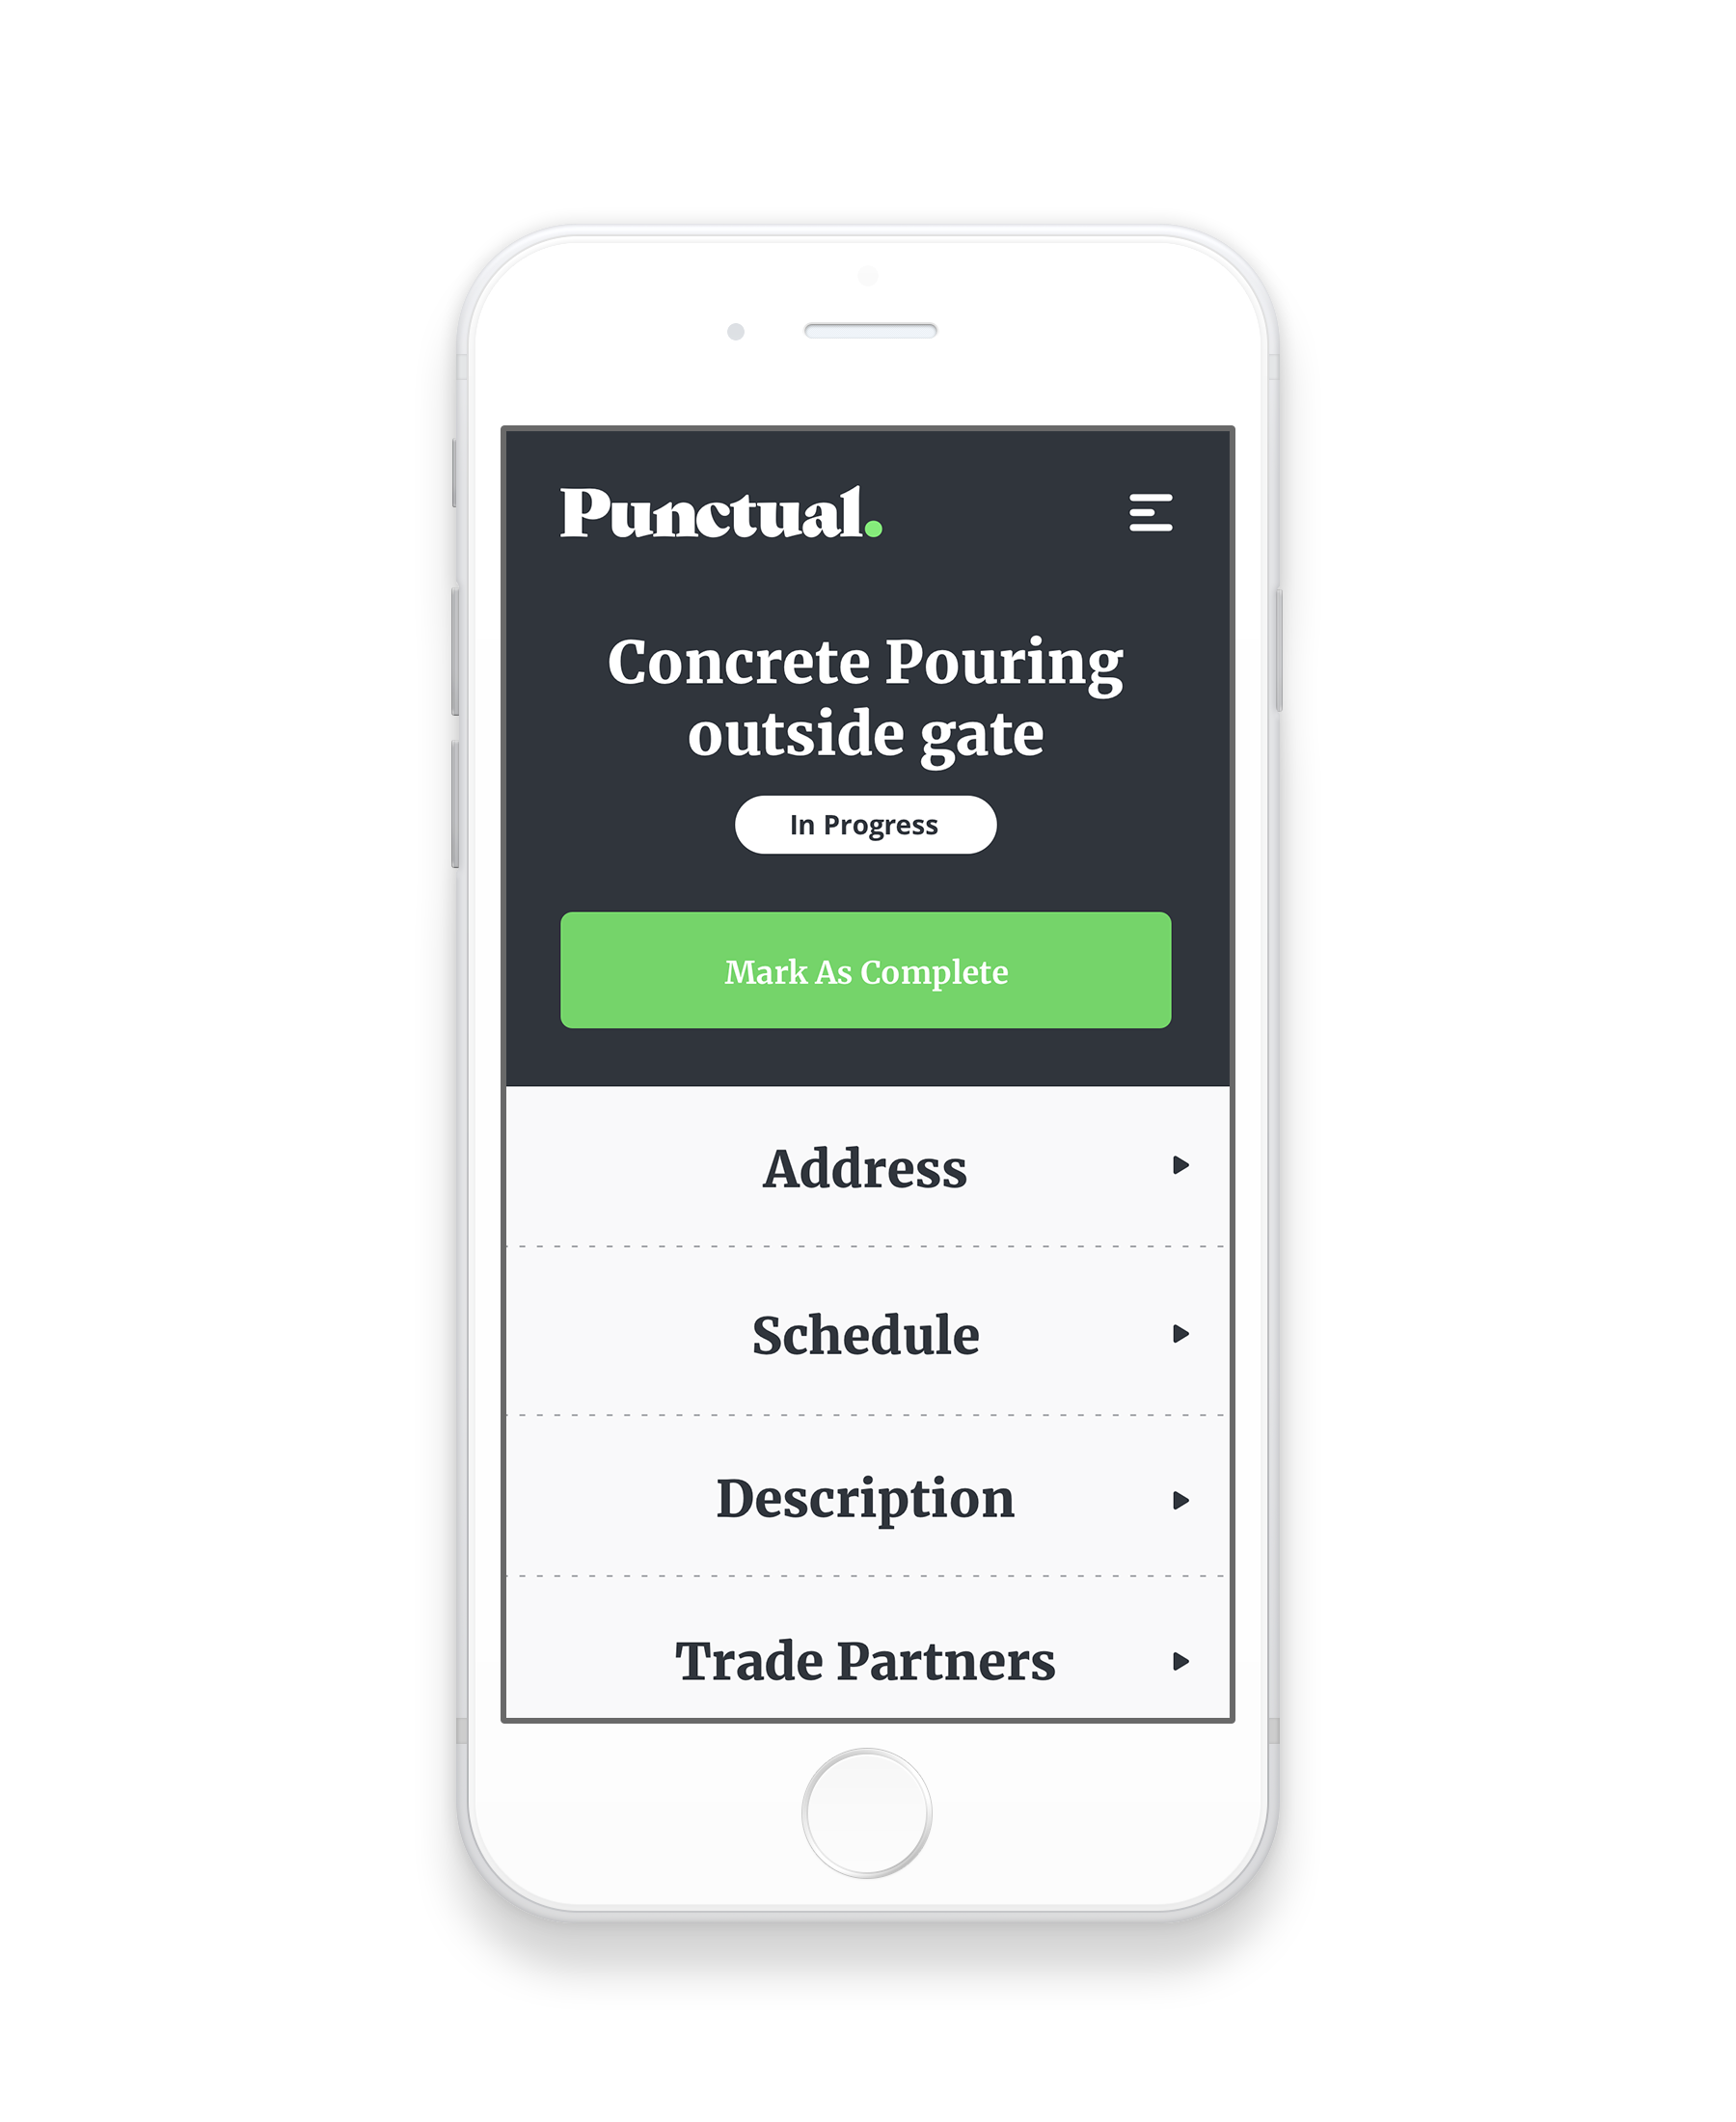 You Stay Productive - With our easy-to-use platform, you can keep all parties accountable and up-to-date with the ability to inform clients.